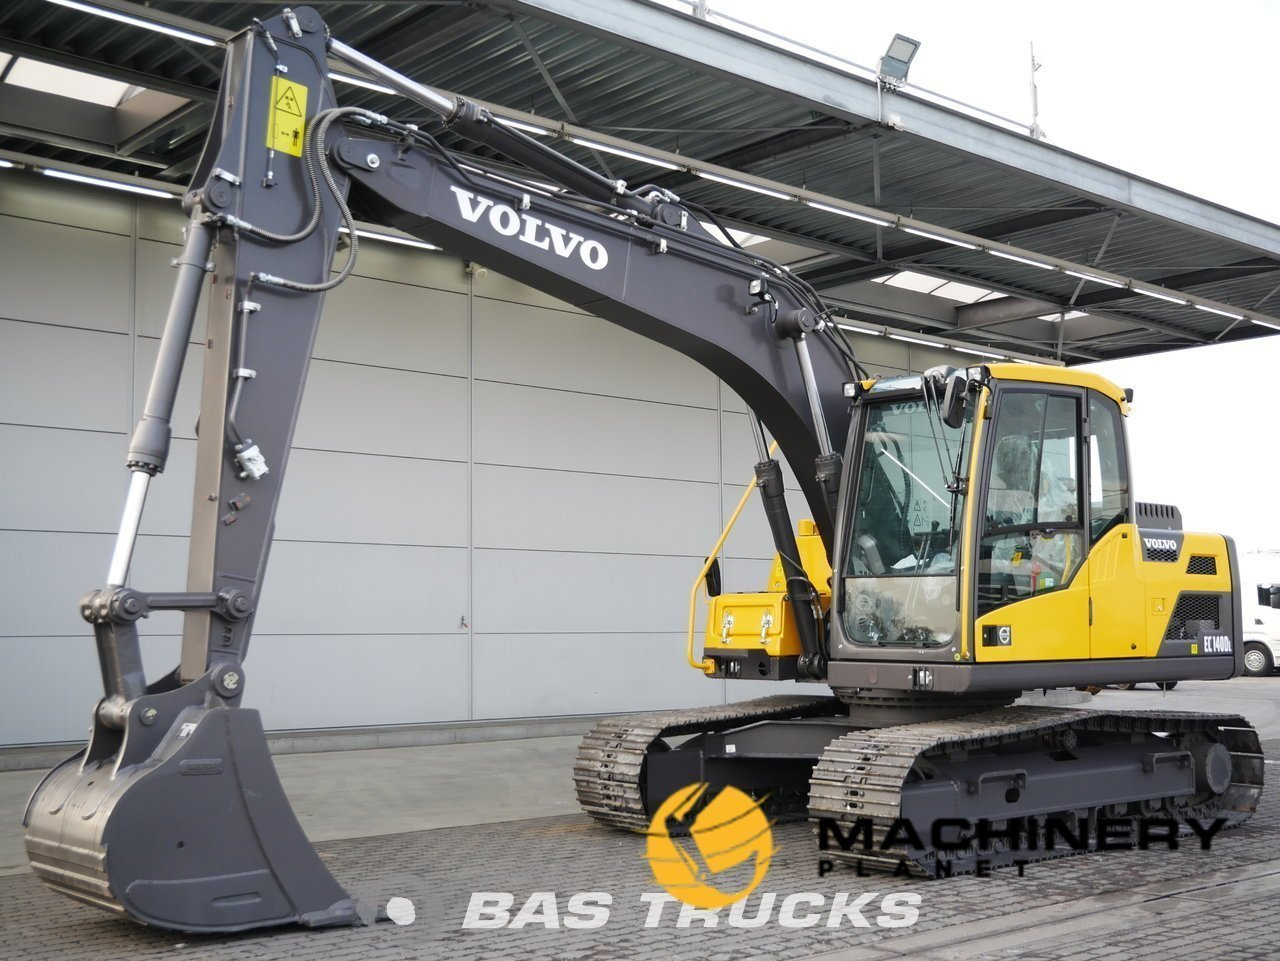 Used-Construction-equipment-Volvo-EC140DL-Track-2018_141859_1-1554125853273_5ca2141d42a49-1.jpg